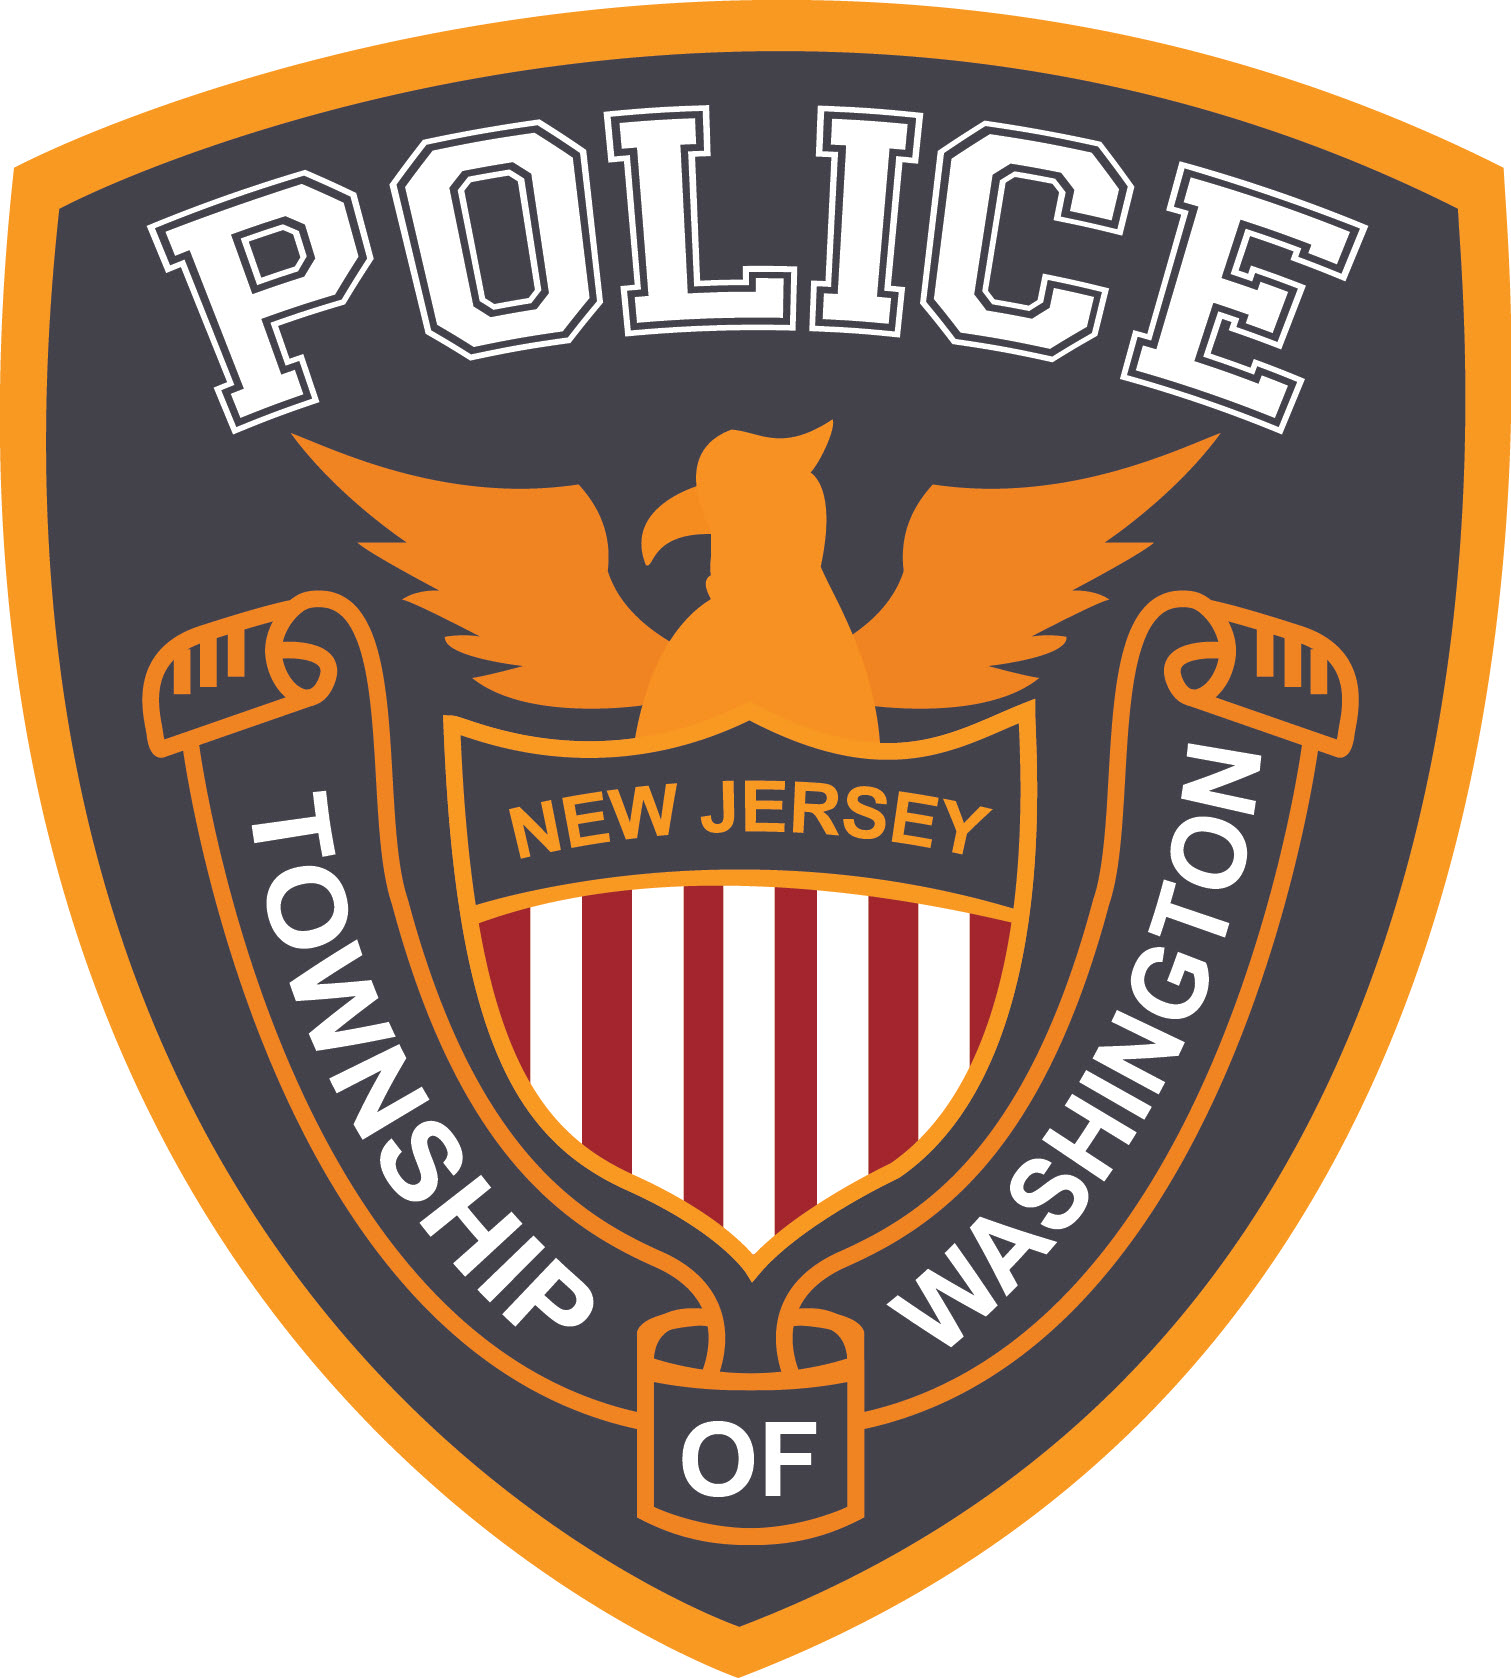 Township of Washington (Bergen County), NJ Police Jobs